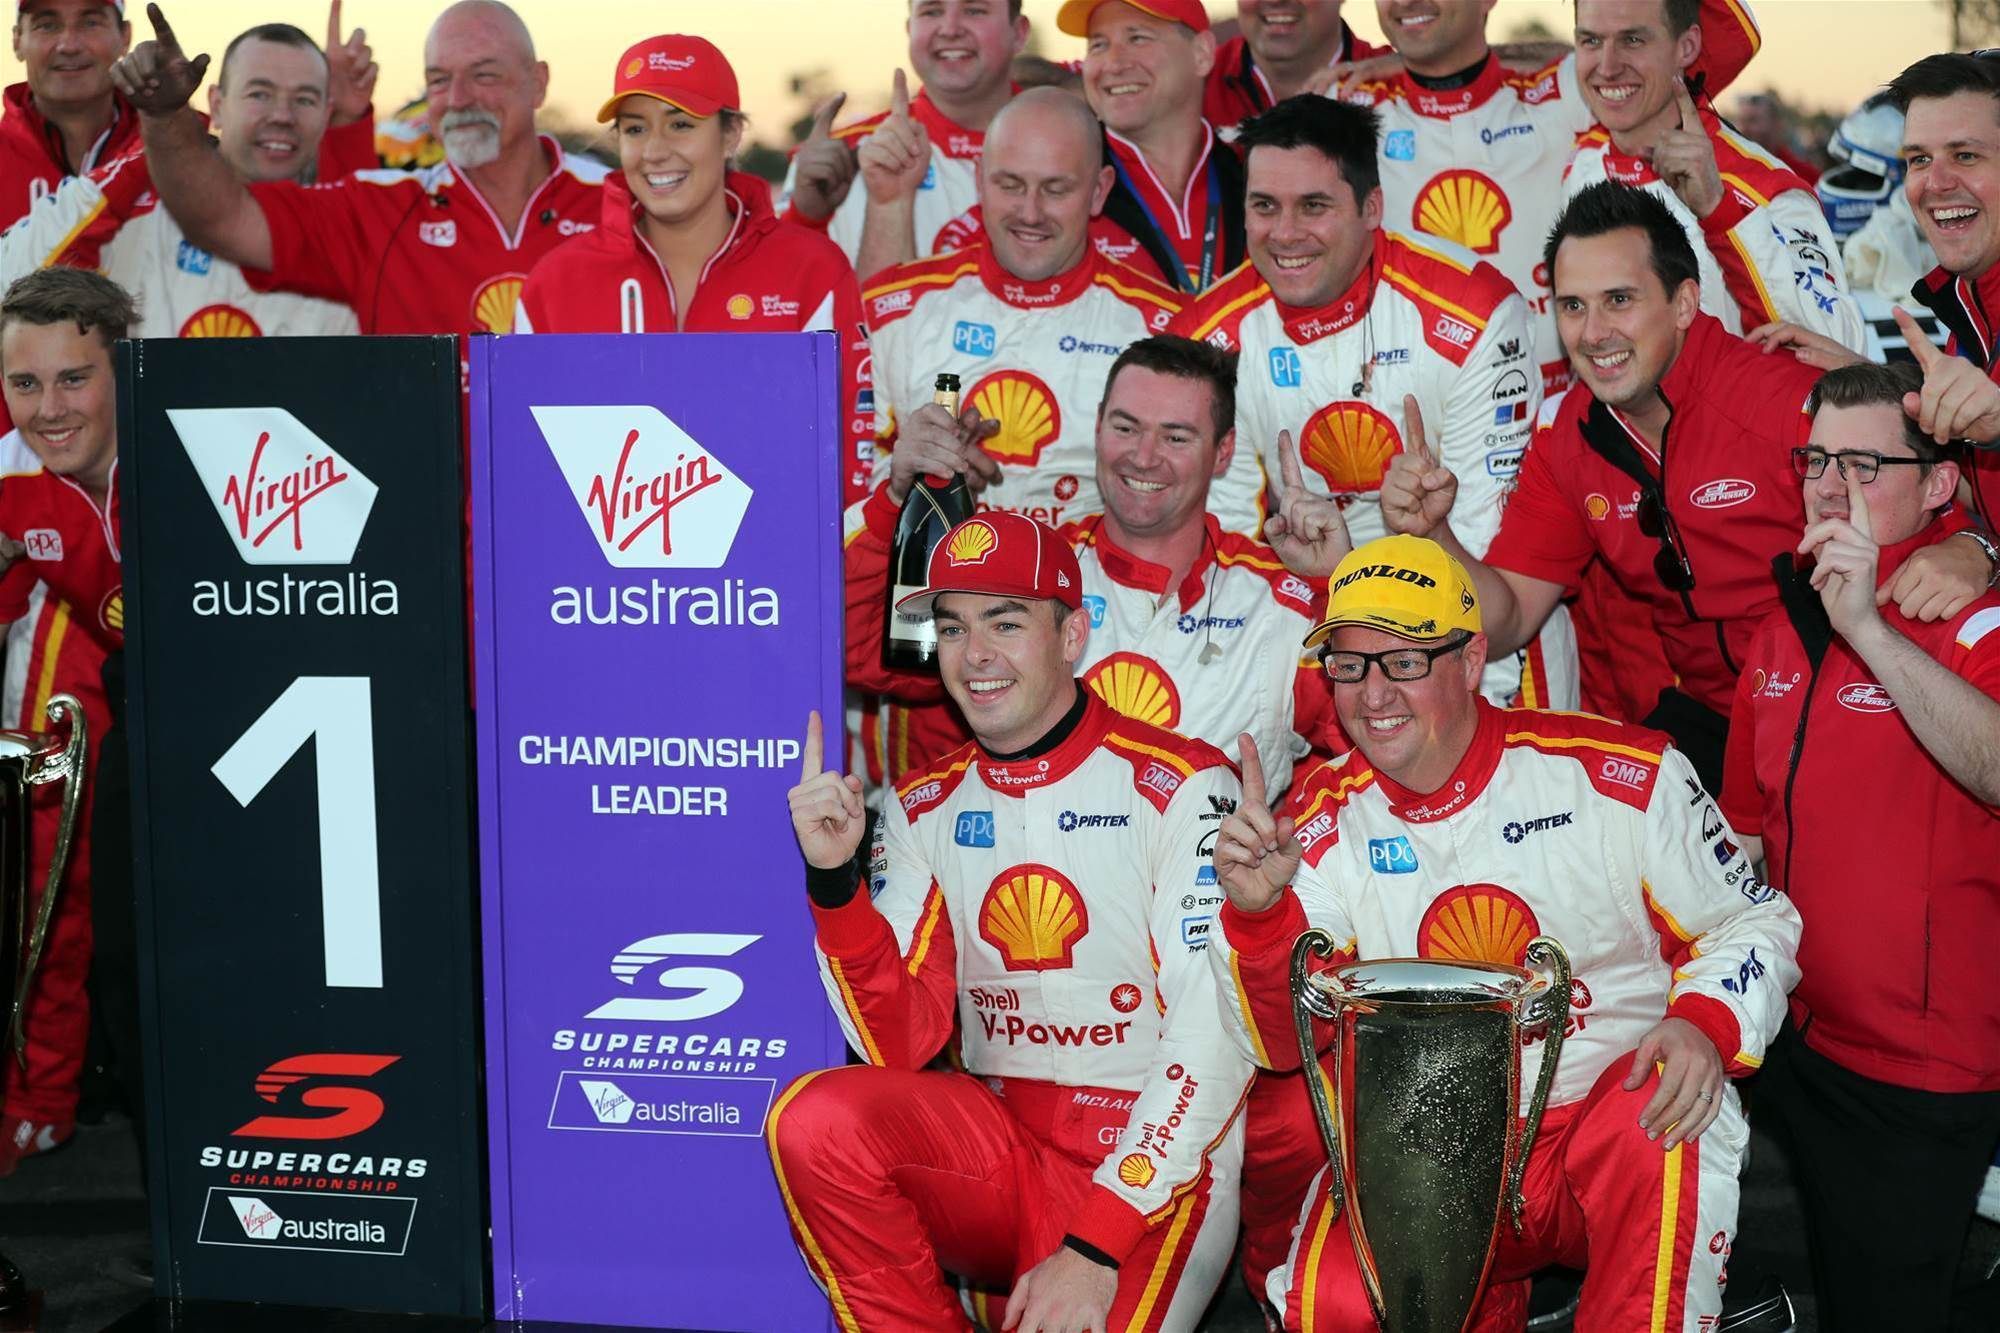 Pic Gallery: Queensland Raceway Supercars